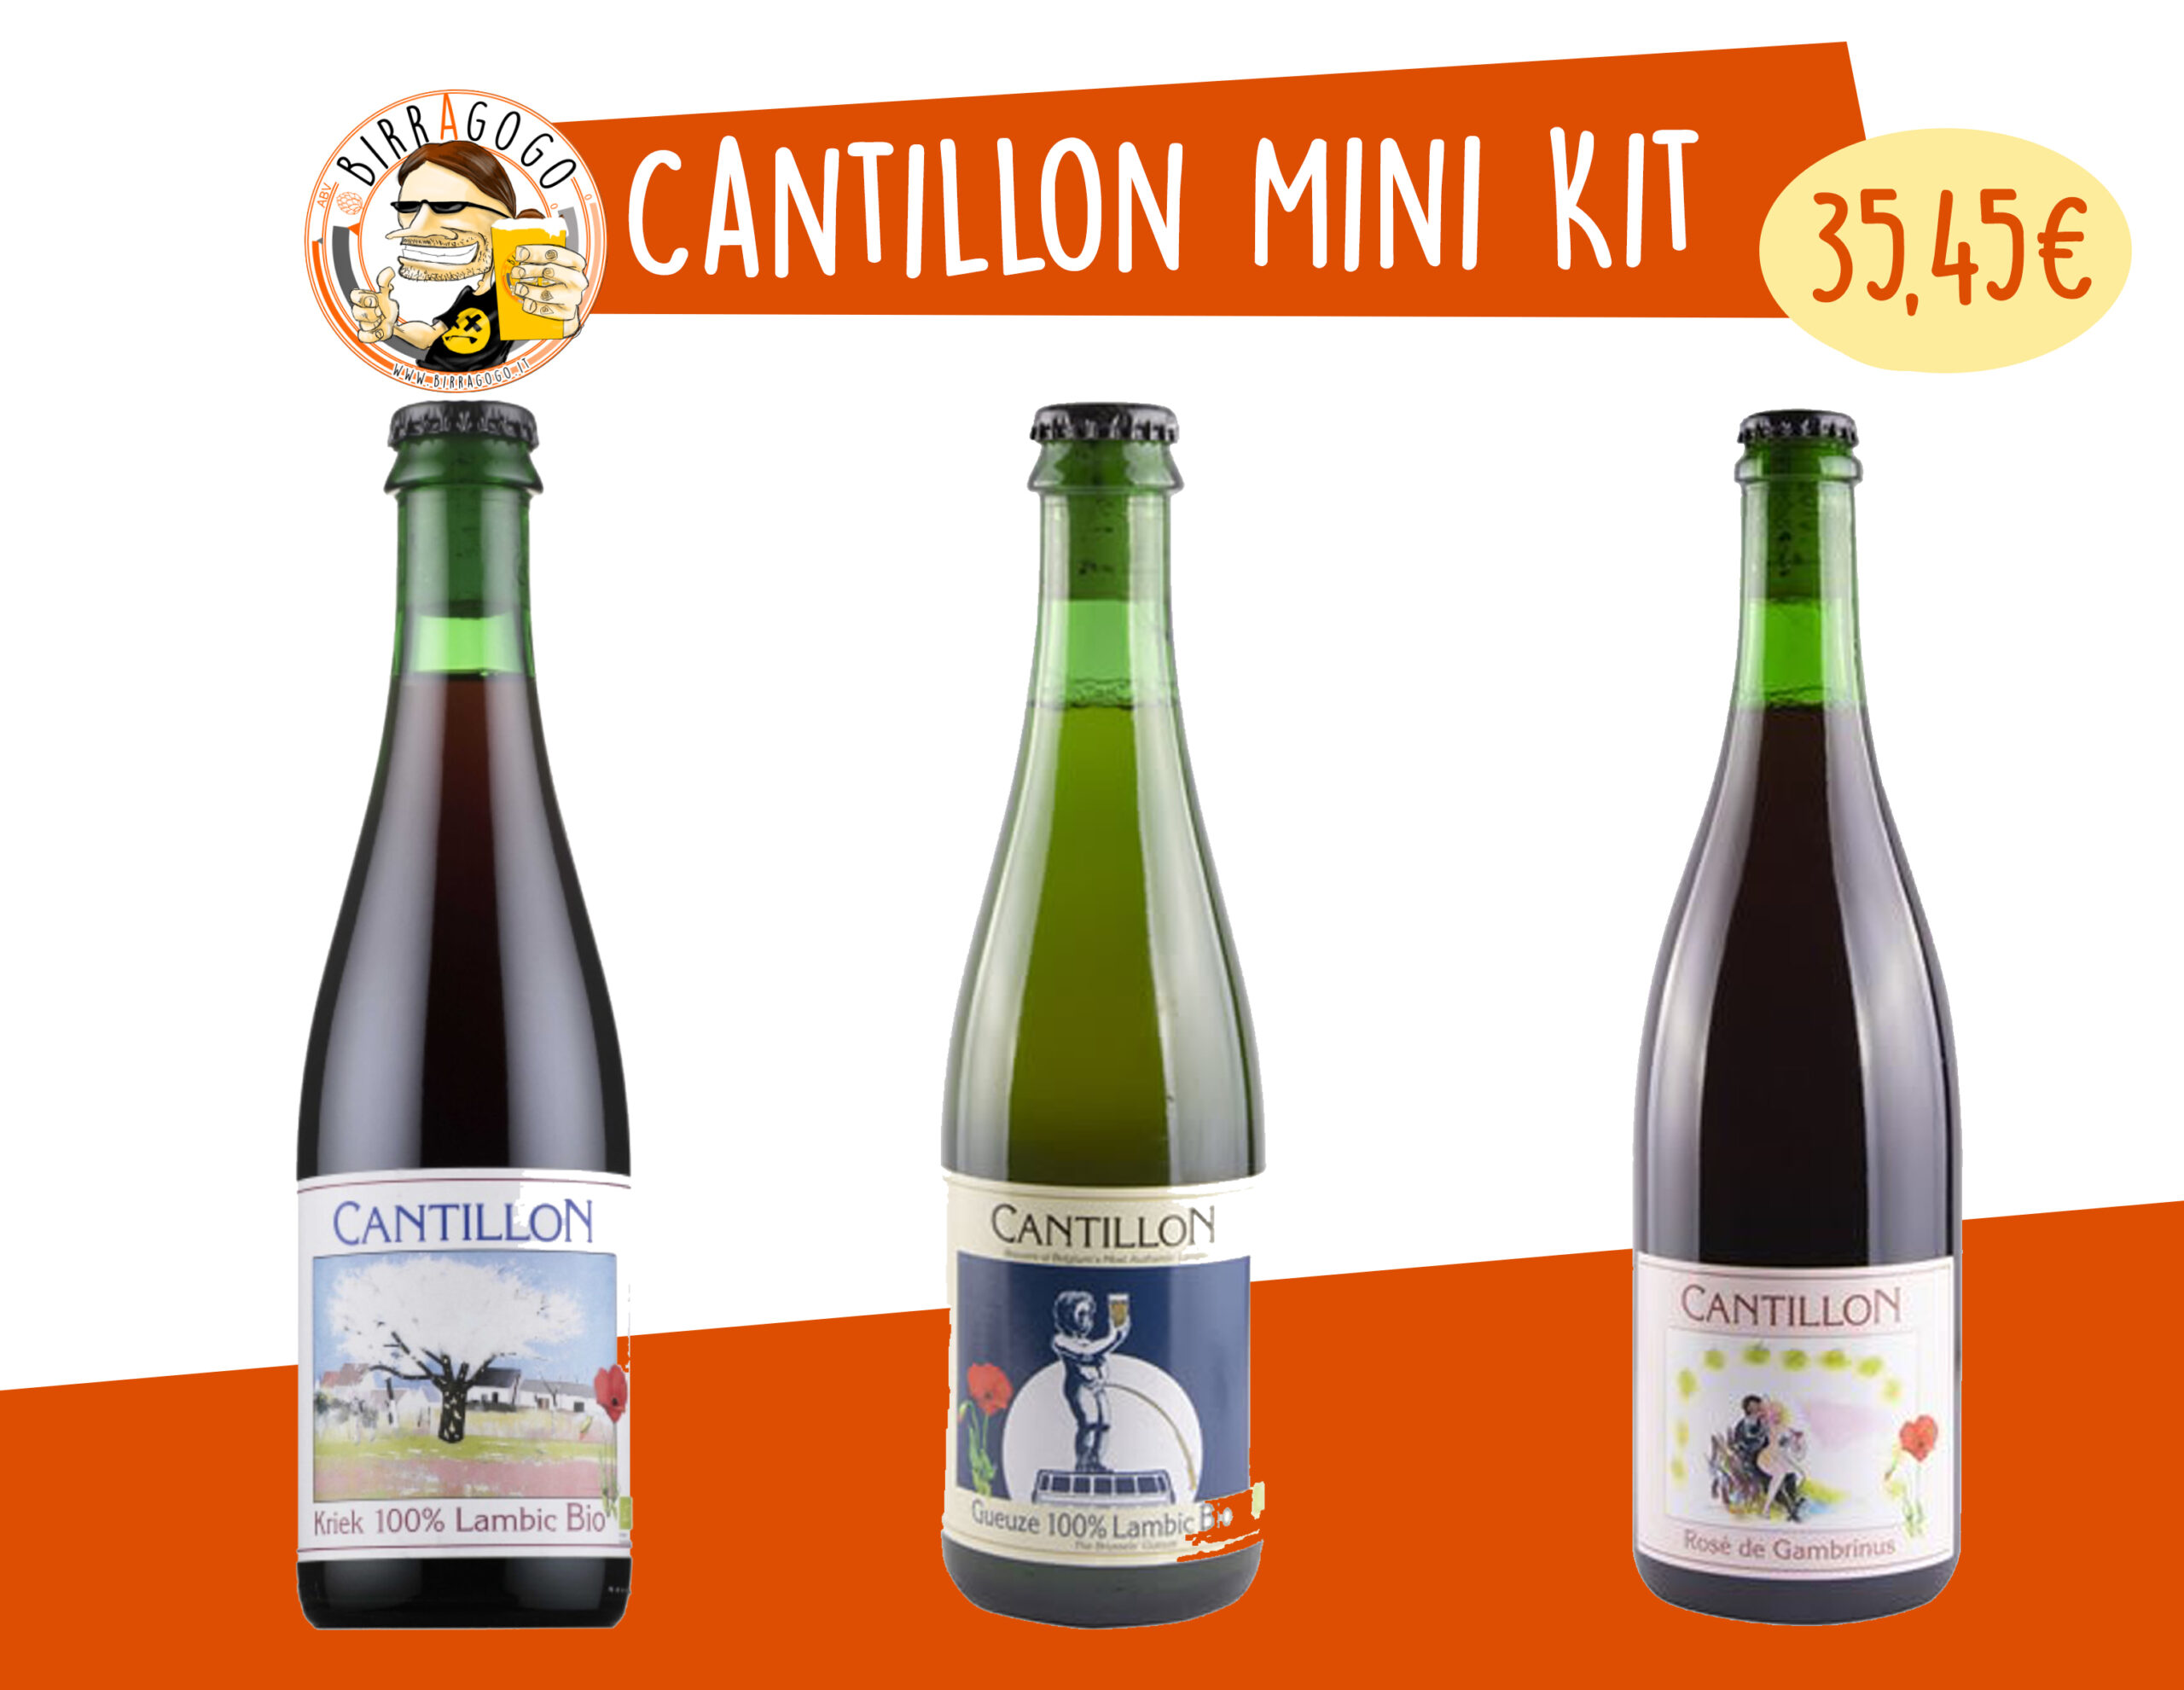 Cantillon Mini Kit